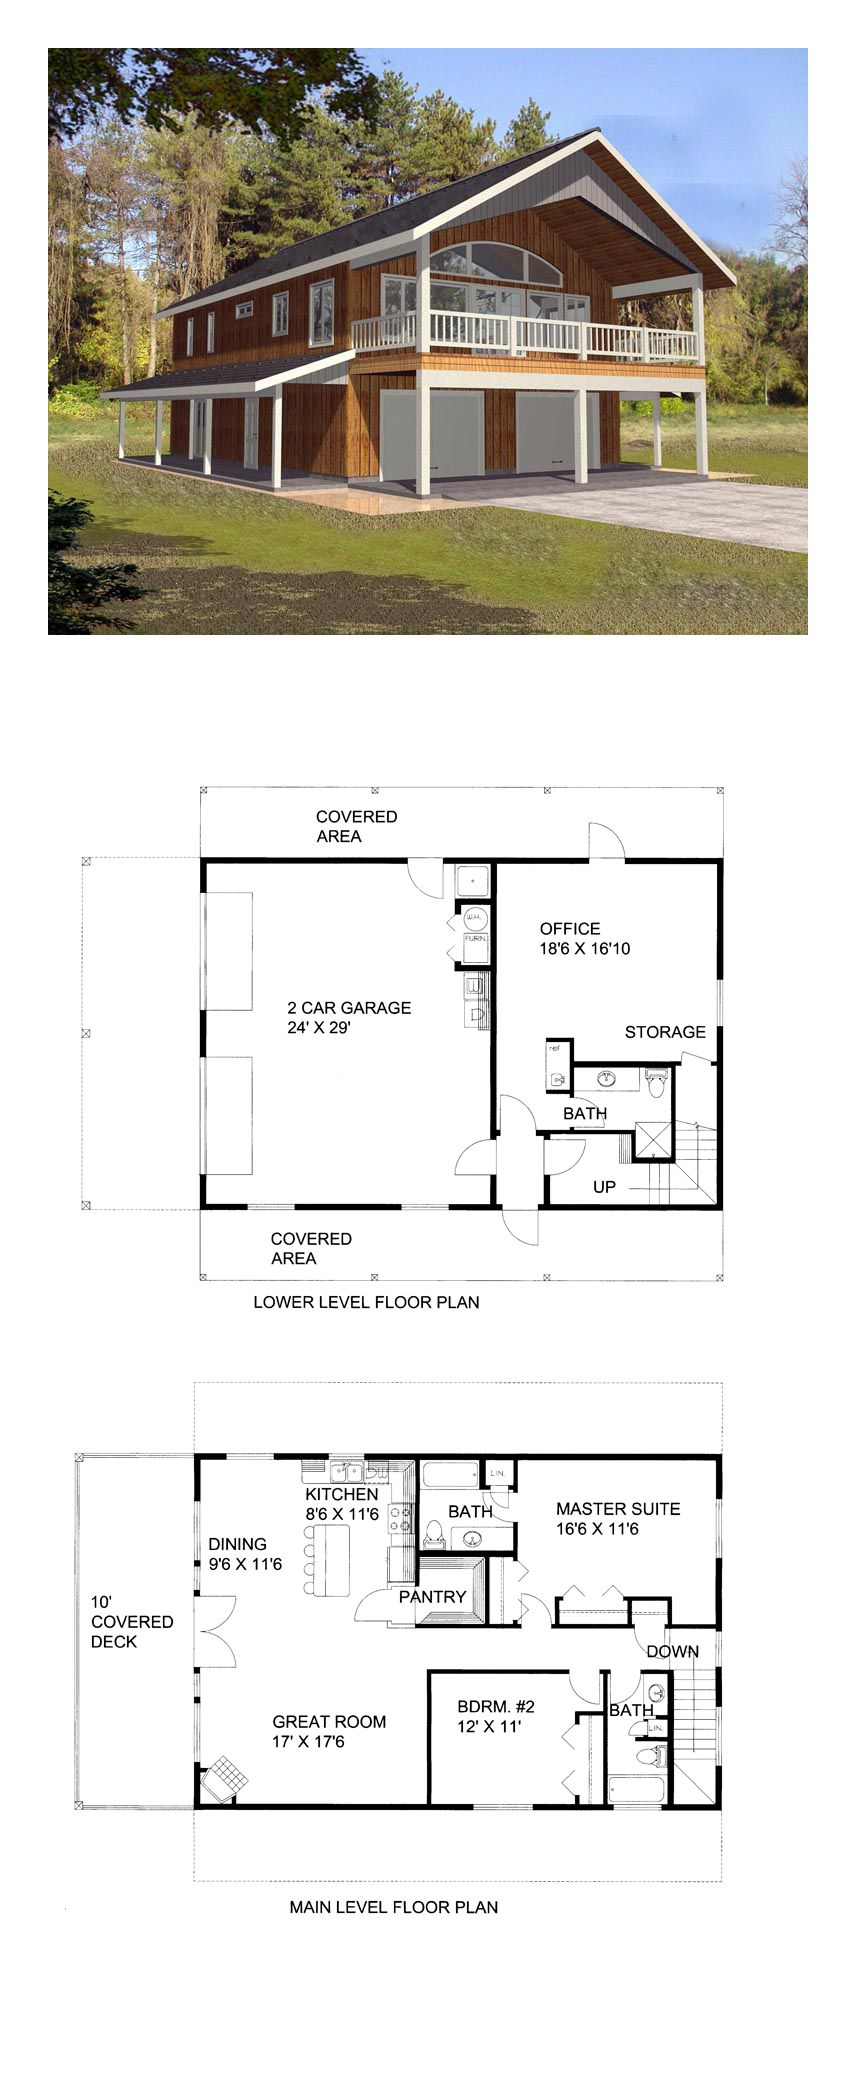 Garage Apartment Plan 85372 Total Living Area 1901 Sq Ft 2 Bedrooms And 3 Bathrooms Carriaghouse